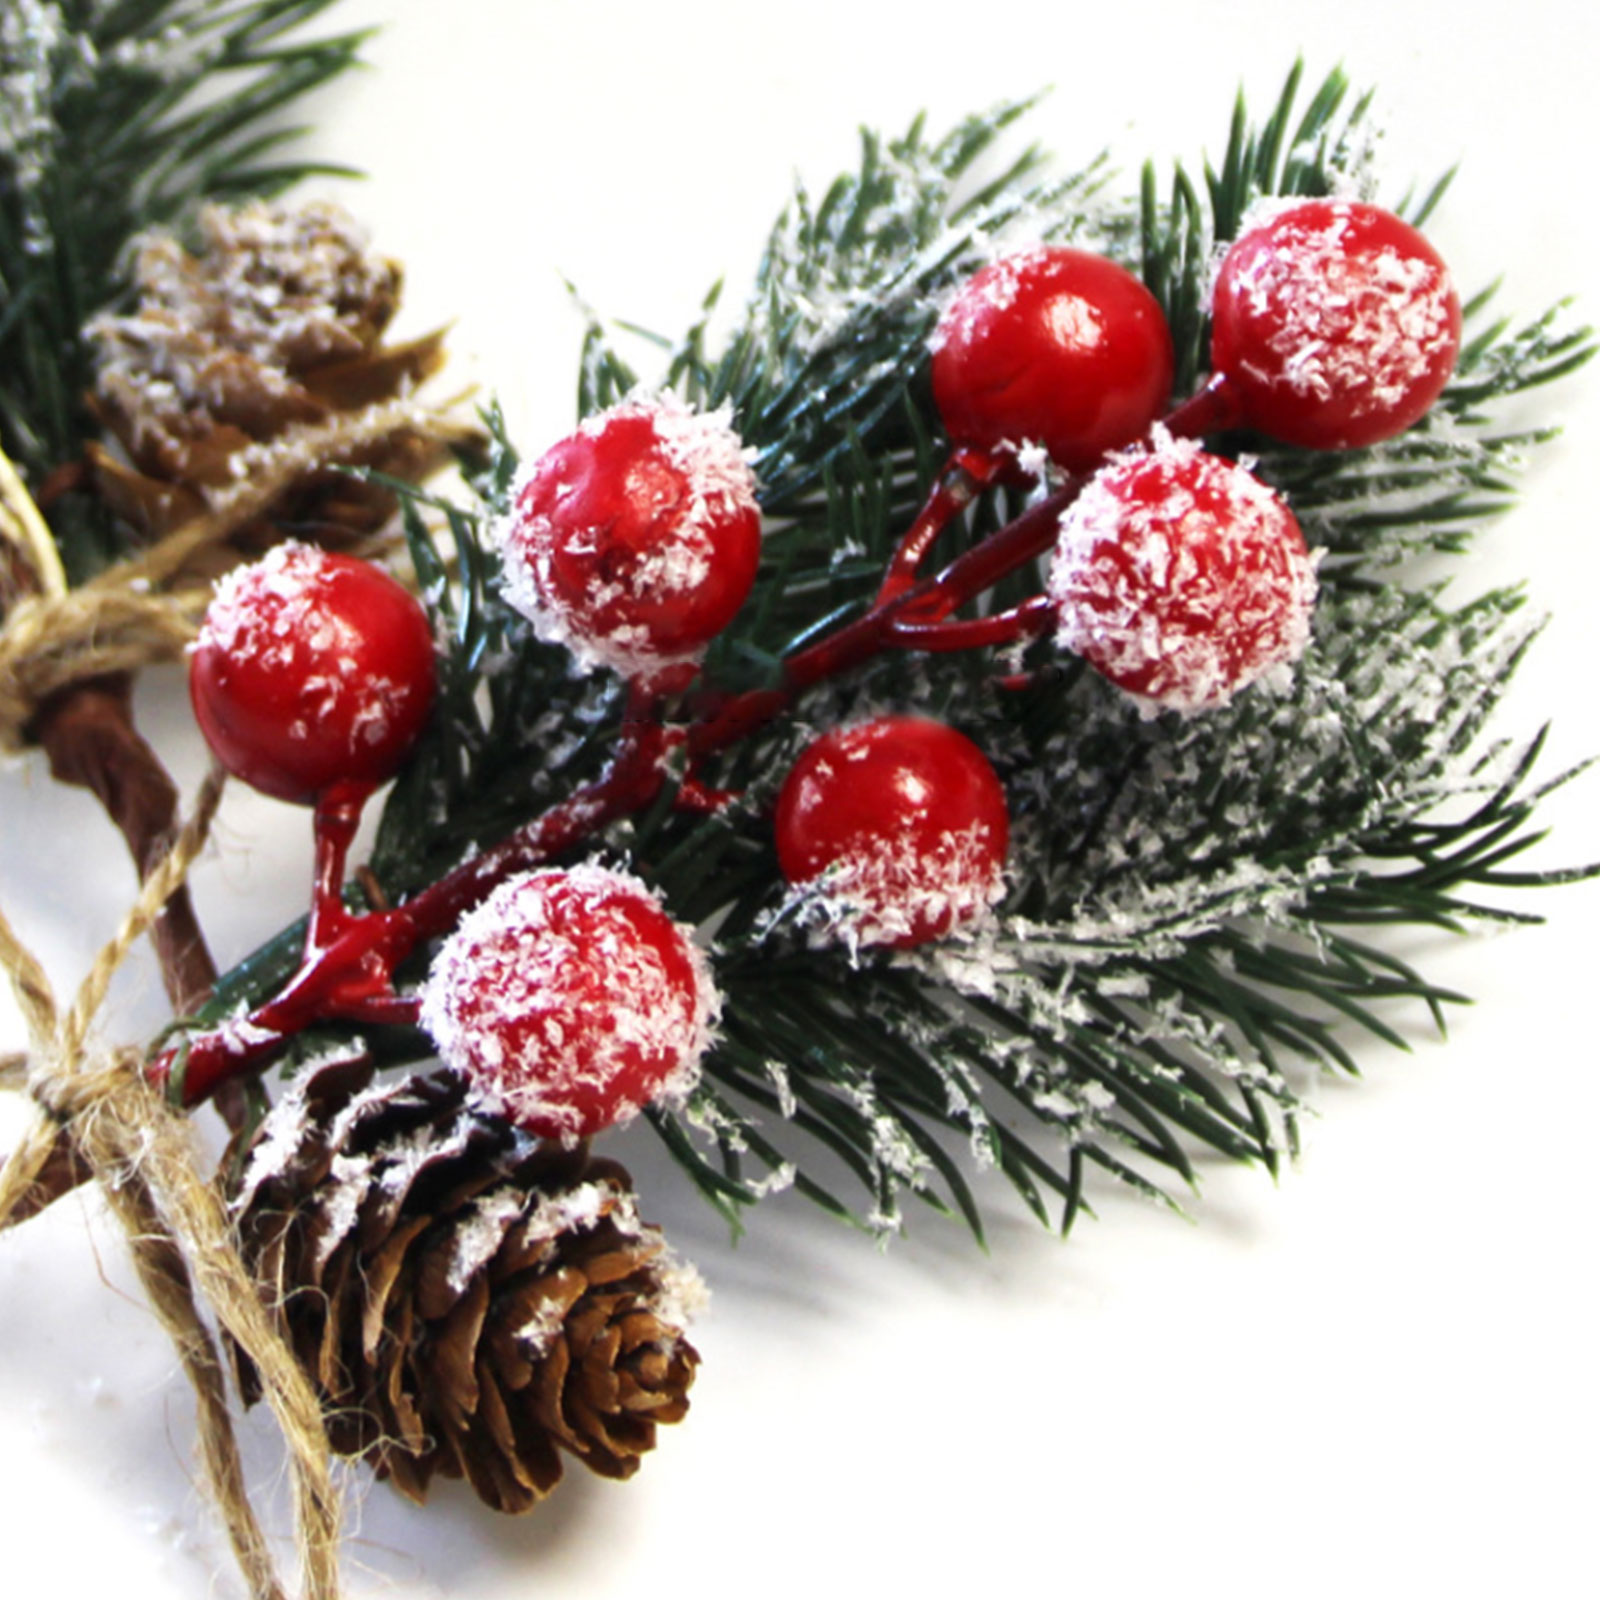 8 Pcs White Christmas Berries Pine Cones for DIY Crafts-Christmas Tree Picks Small Spot Spray Evergreen Artificial Pine Branches Holly Stem for Decoration,Xmas Garland D/écor,Gift Wrap Embellishment